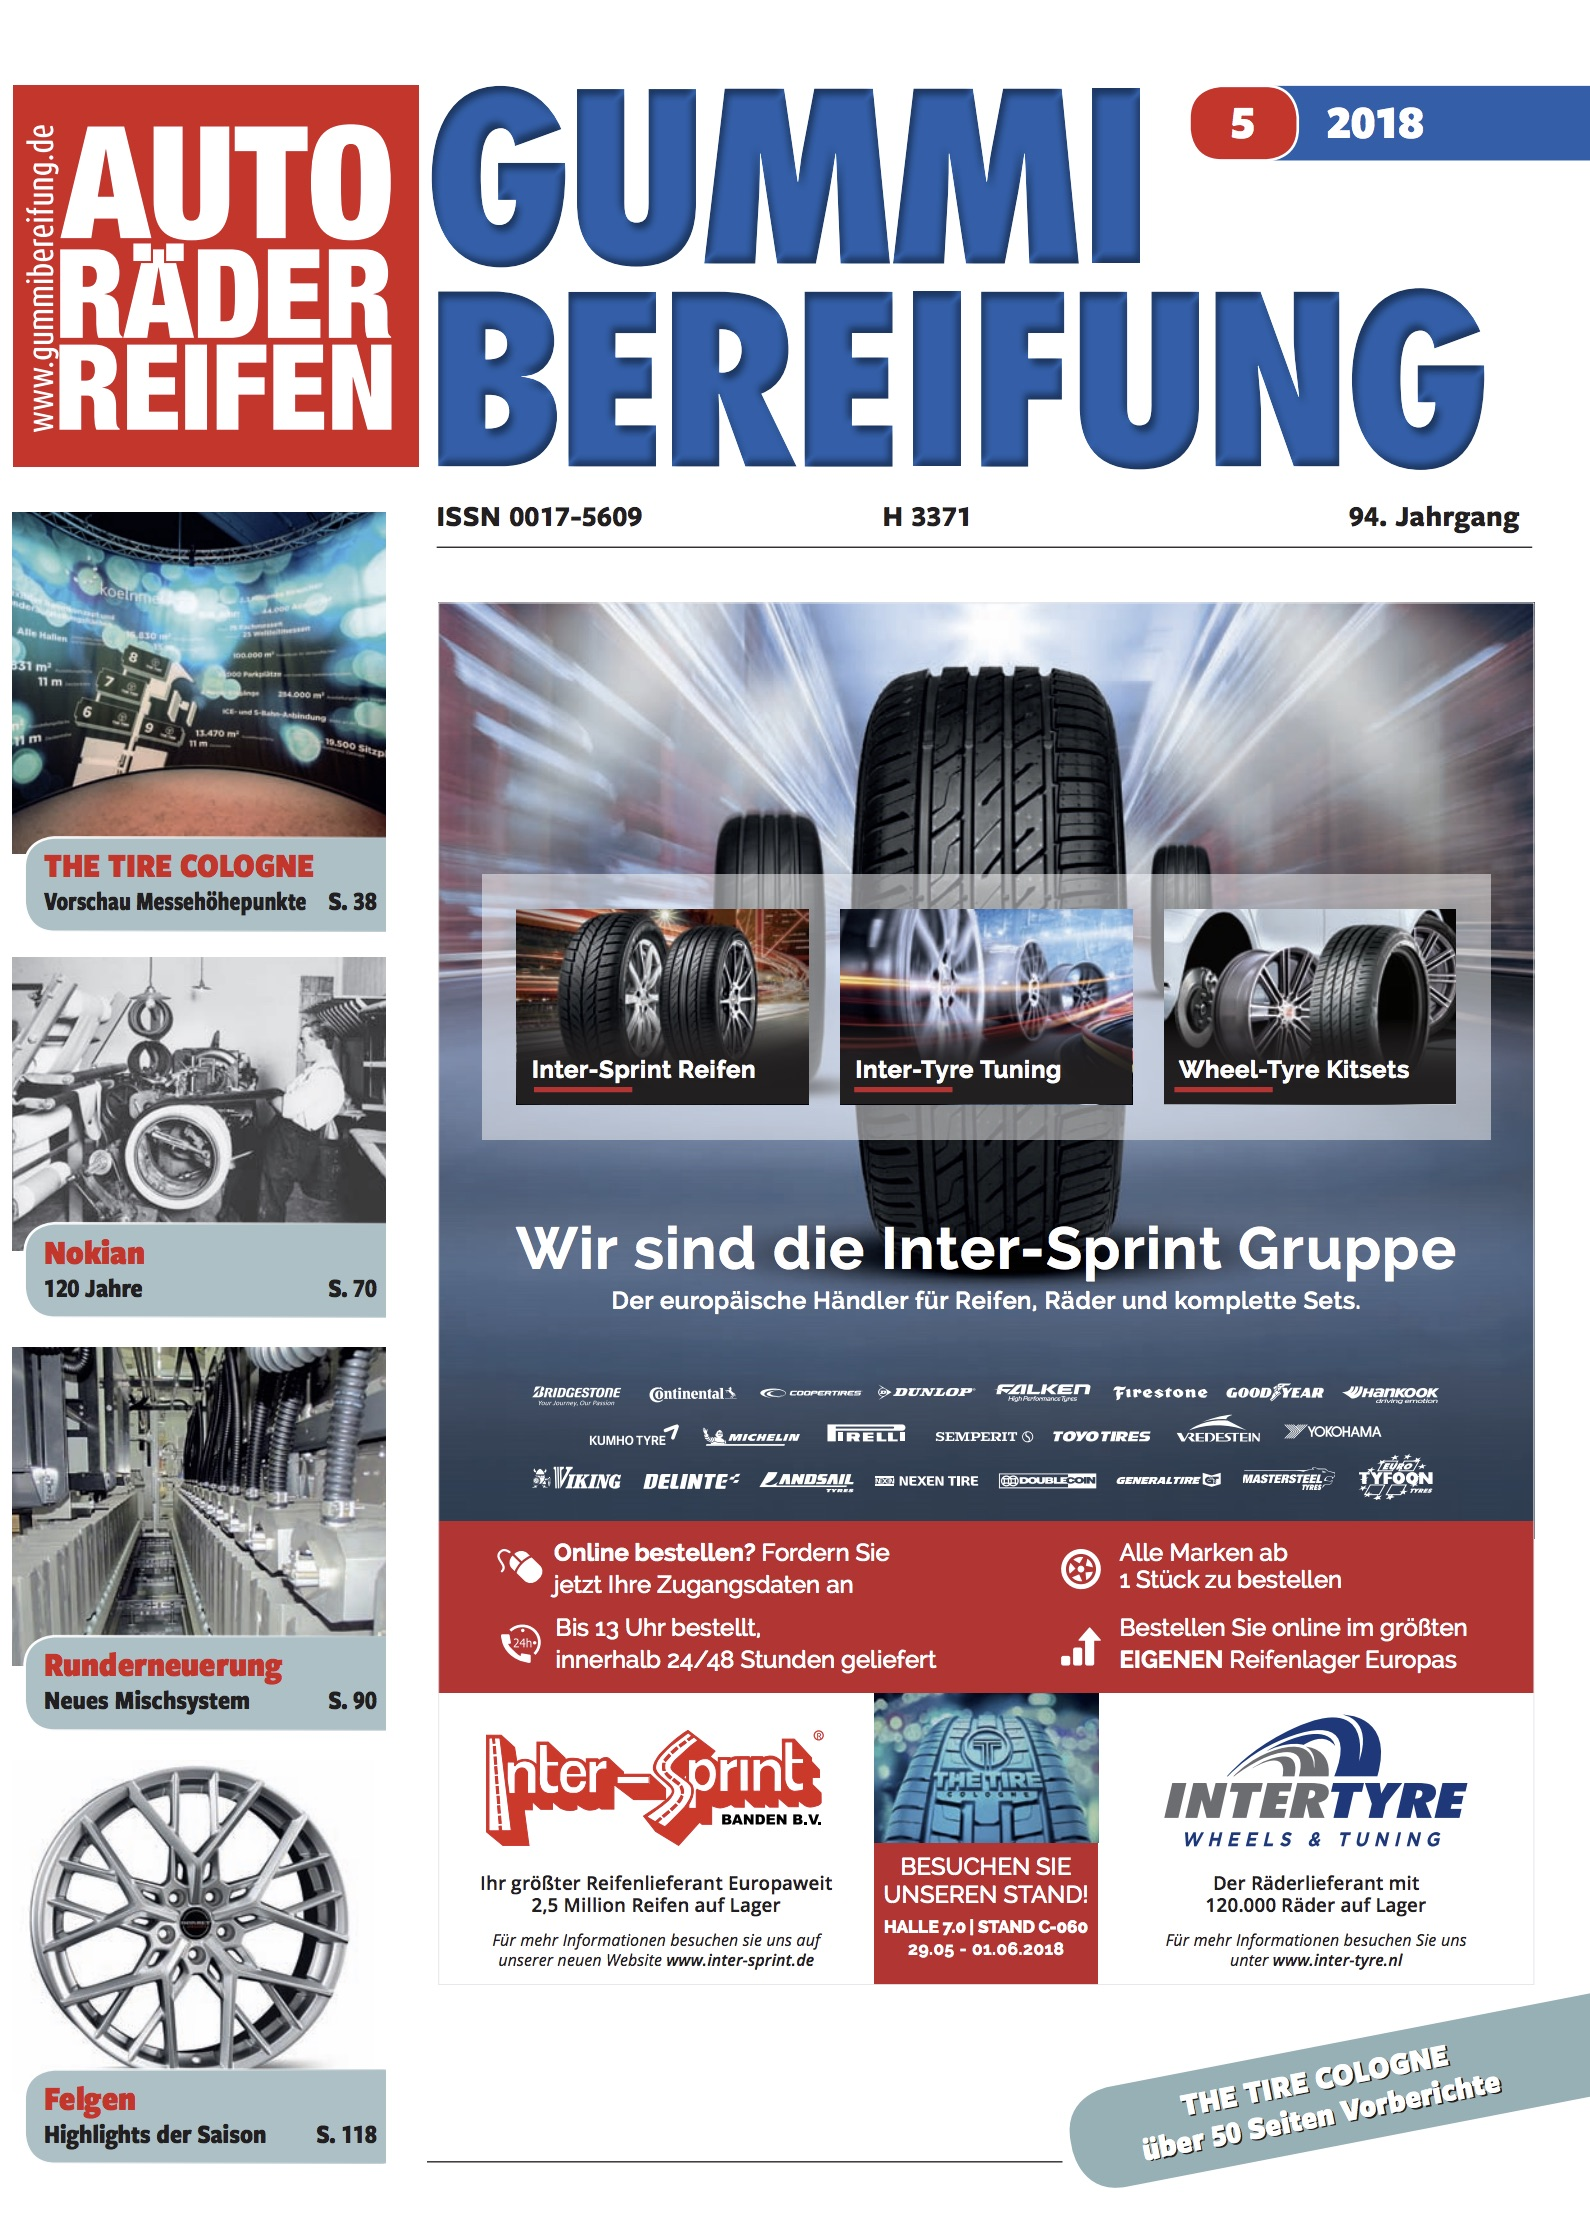 TyreSystem auf The Tire Cologne 2018